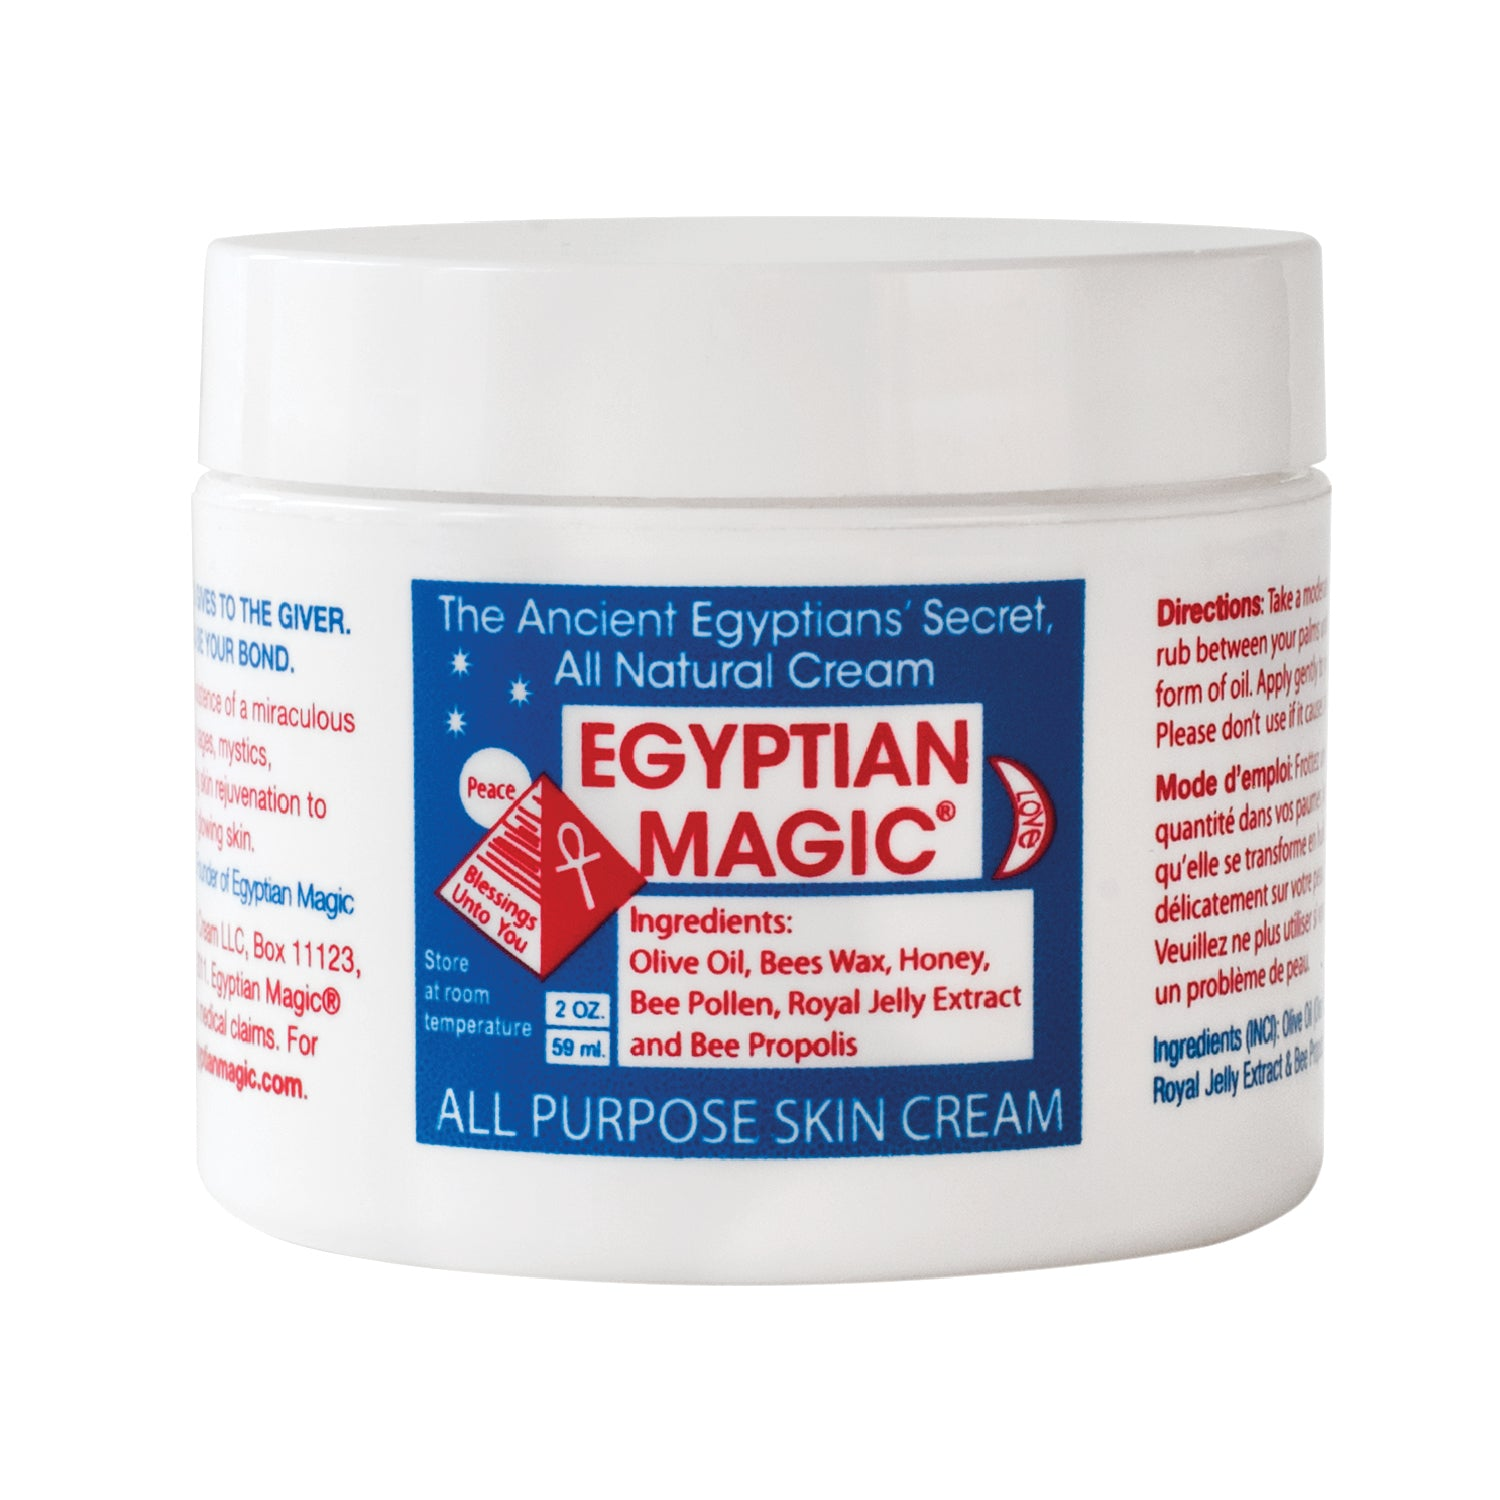 Egyptian Magic - All Purpose Skin Cream 59ml